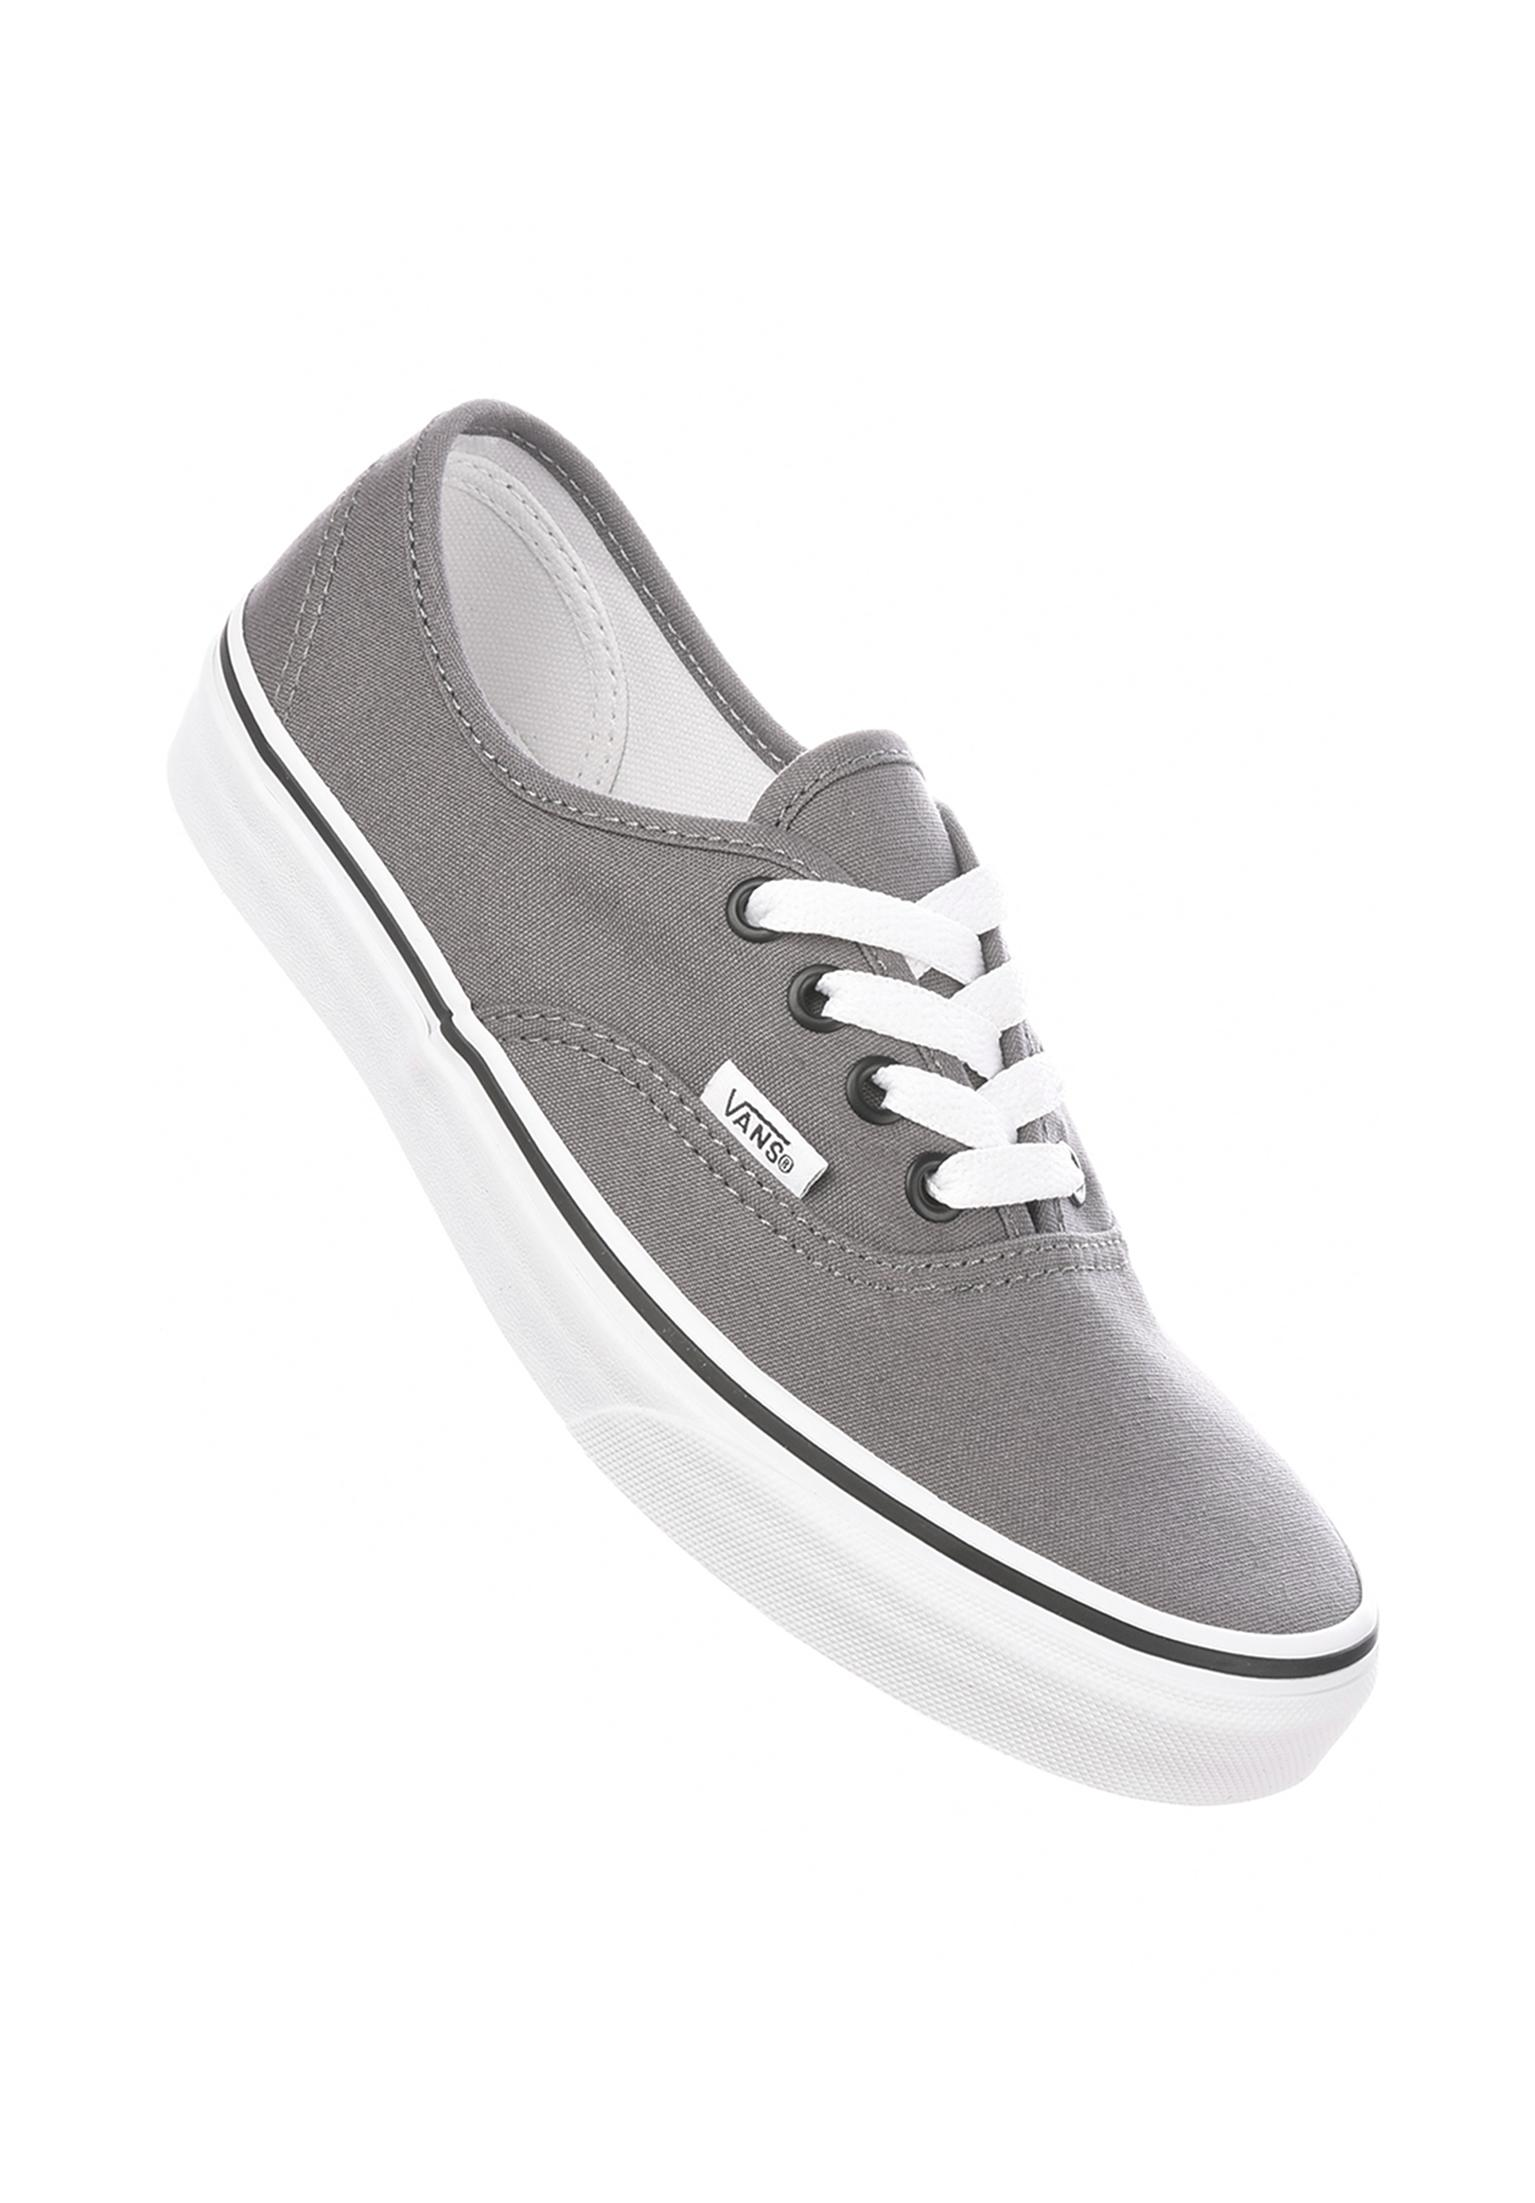 5d234be8cfb7c5 Authentic Classic Vans All Shoes in pewter-black for Women